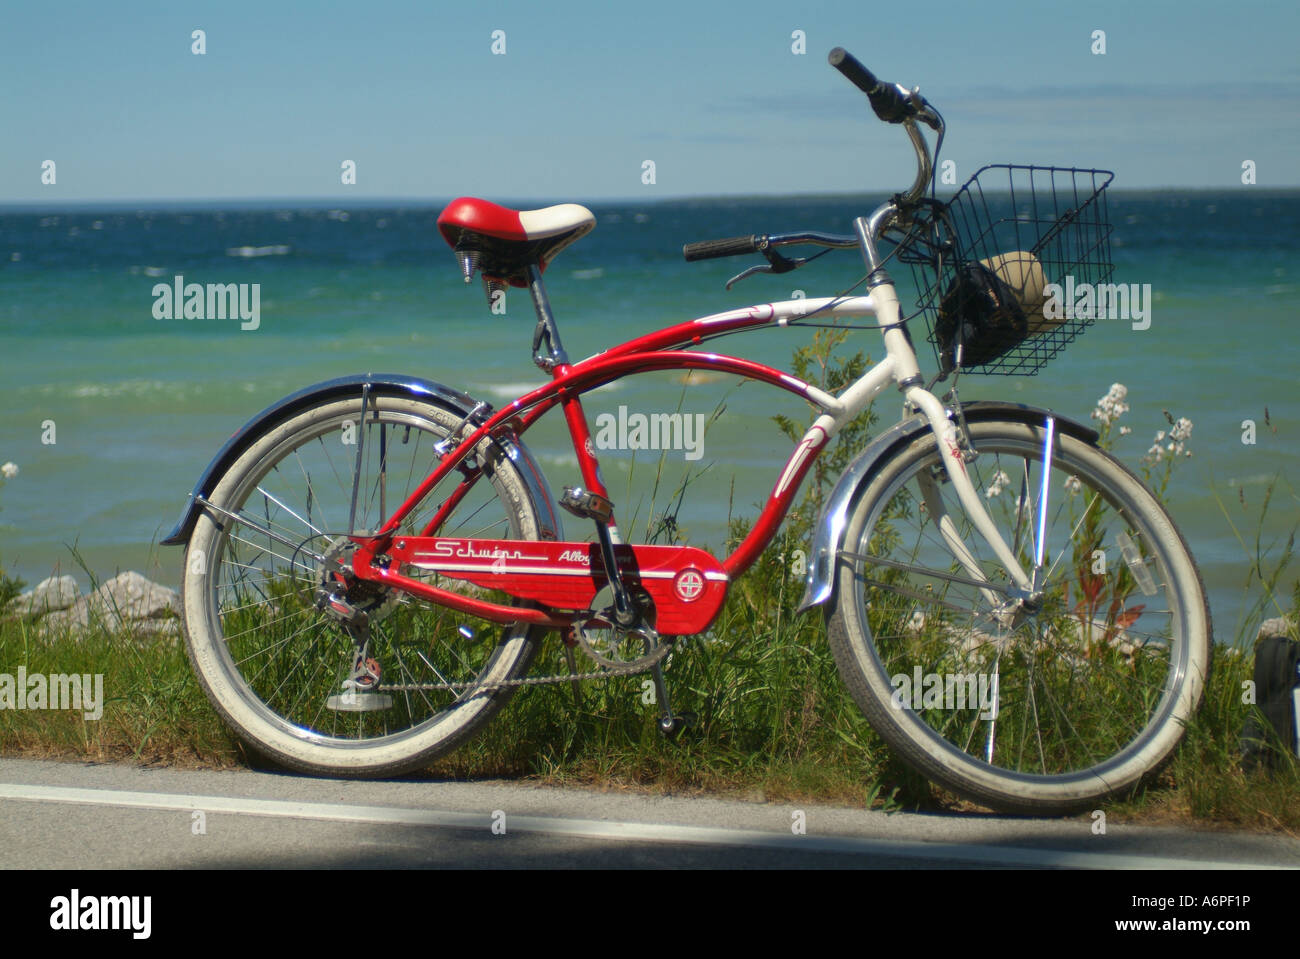 usa-michigan-mackinac-island-lake-huron-schwinn-bicycle-A6PF1P.jpg